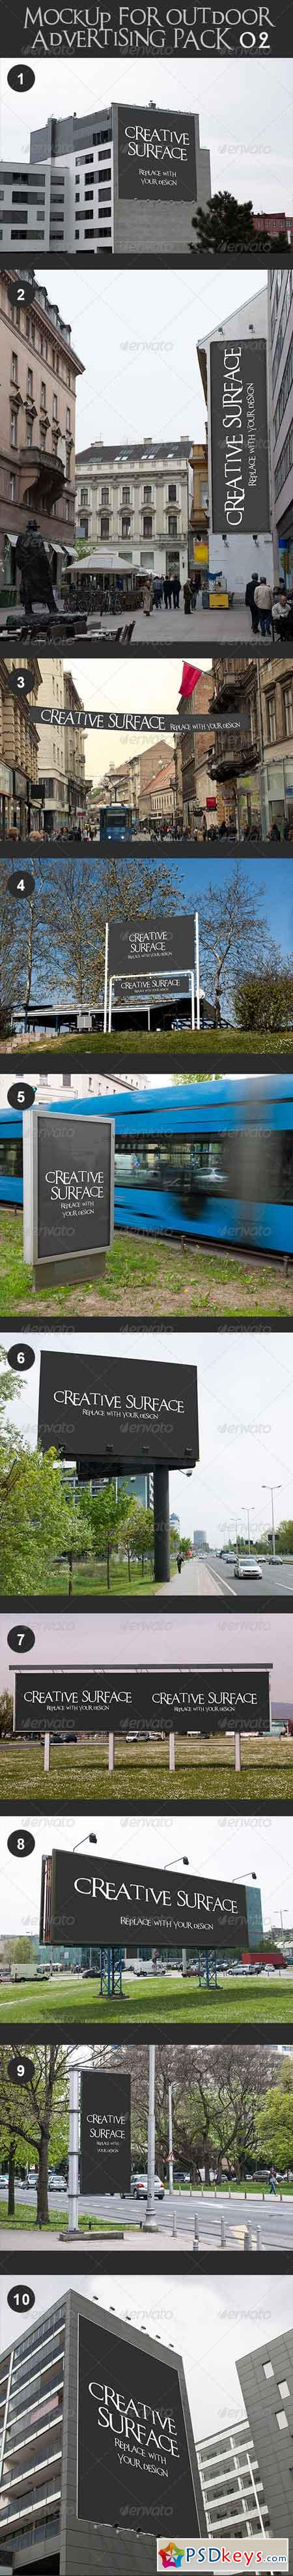 10 Mock Up's for Outdoor Advertising Pack 2 7423055